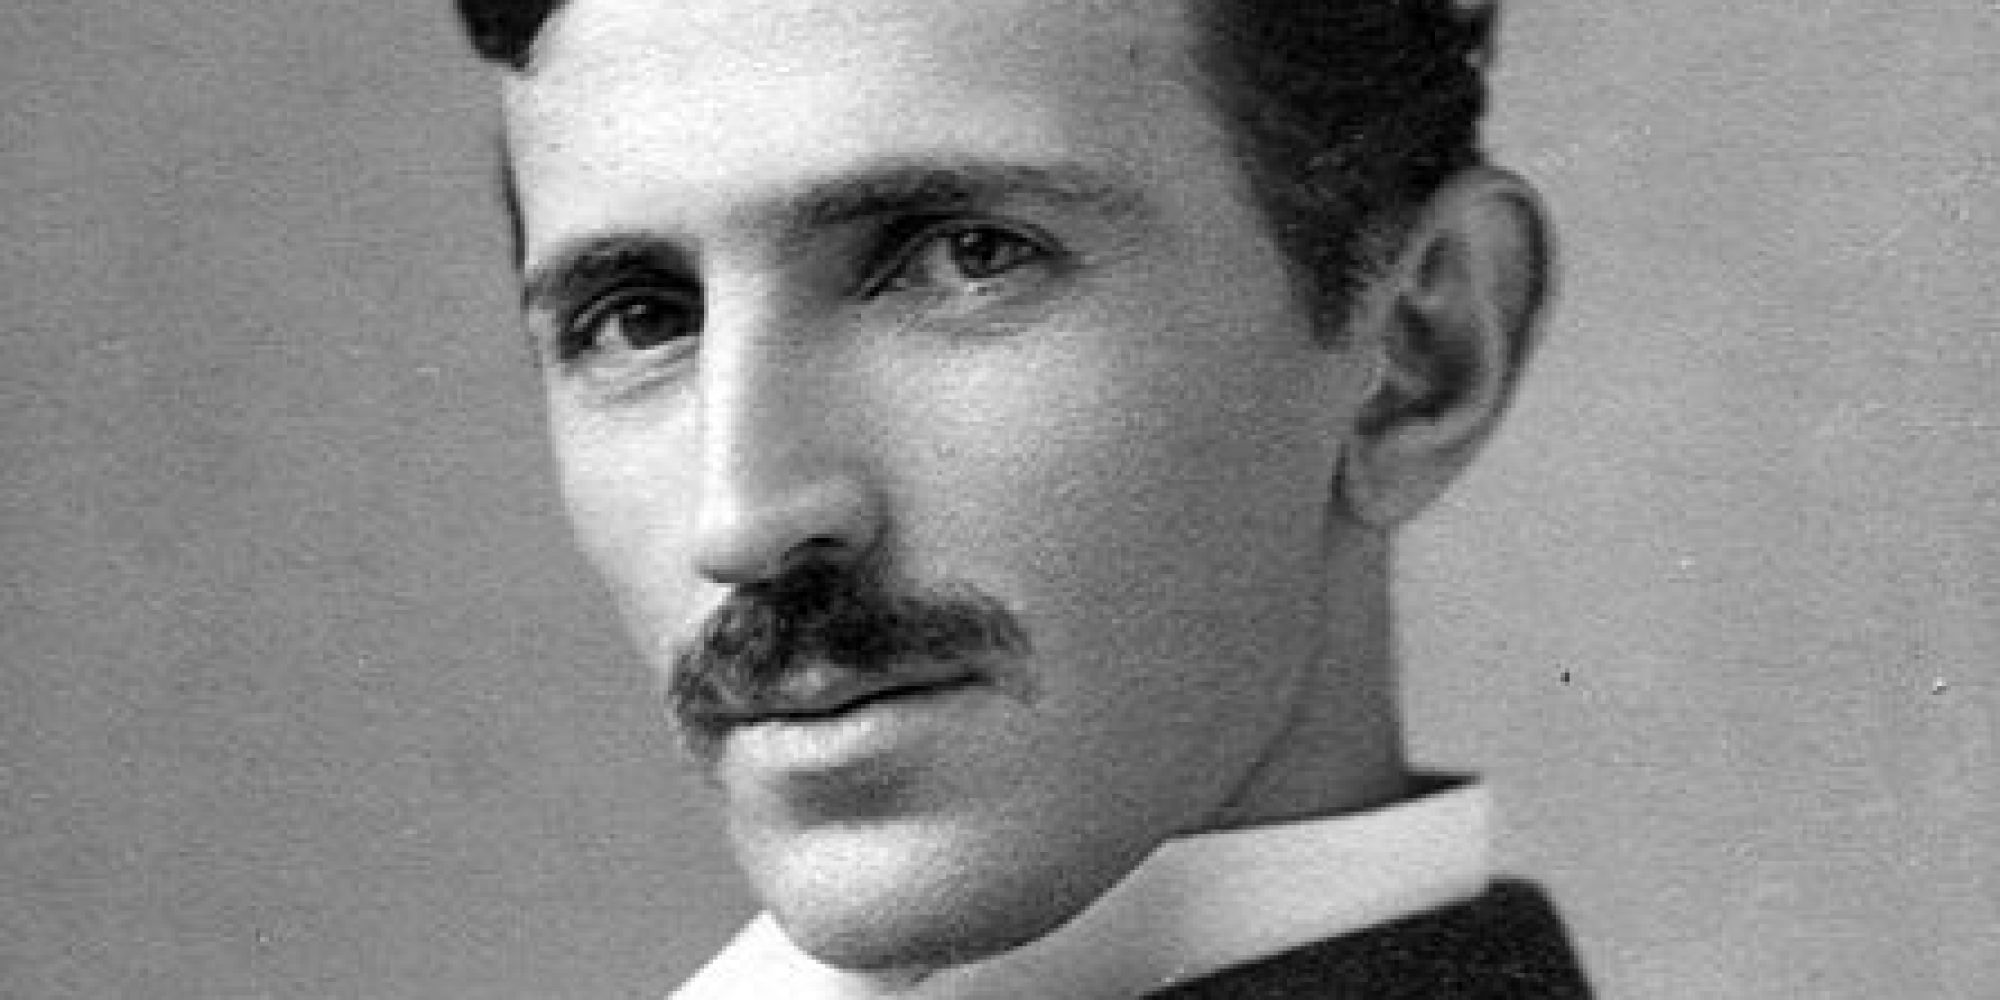 nikola tesla - photo #12